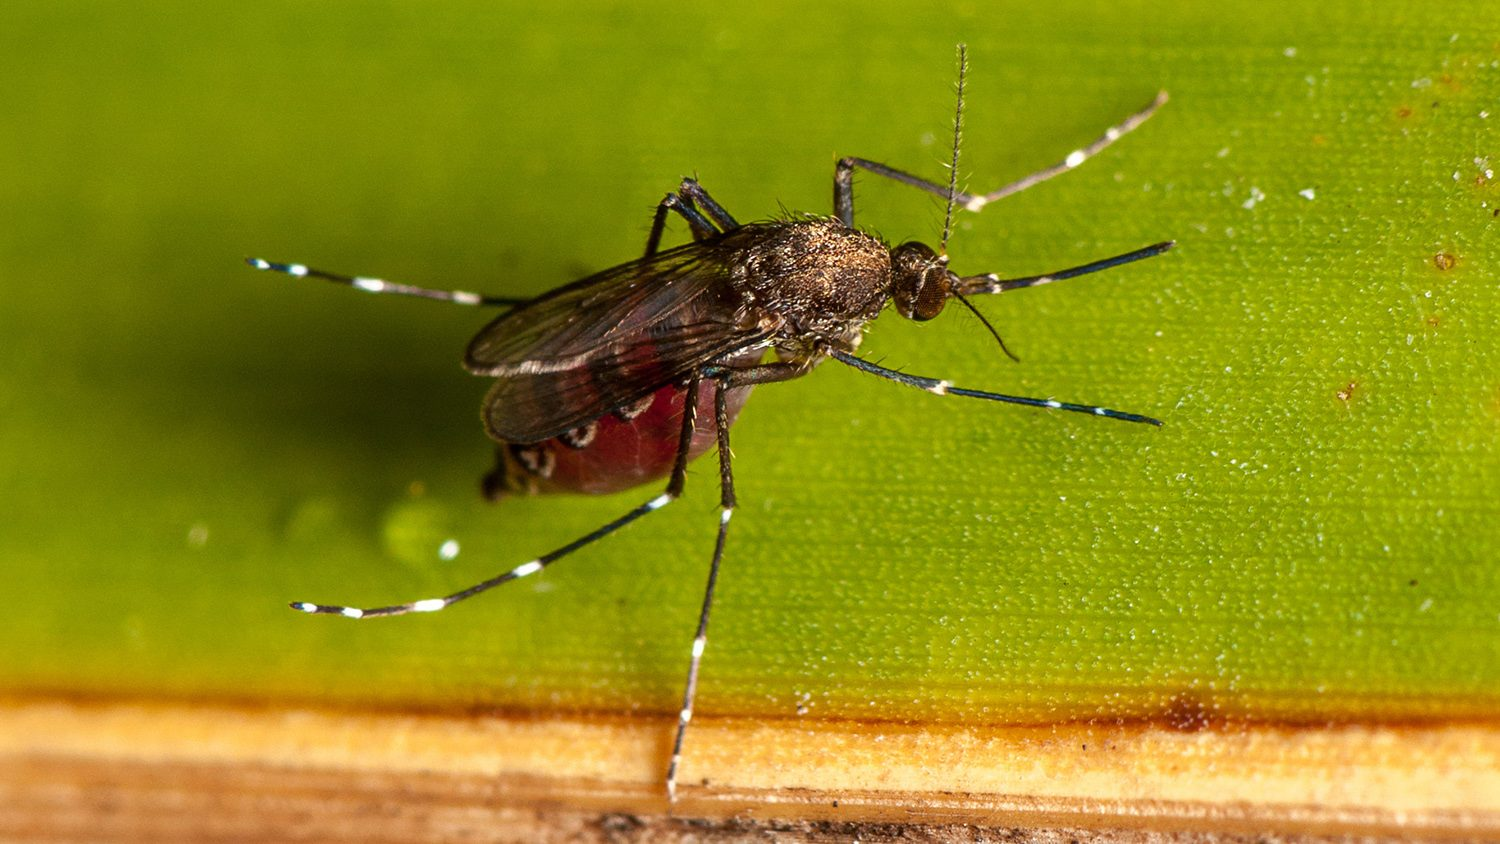 Female culicid mosquito after taking a blood-meal (M. Bertone, NCSU)